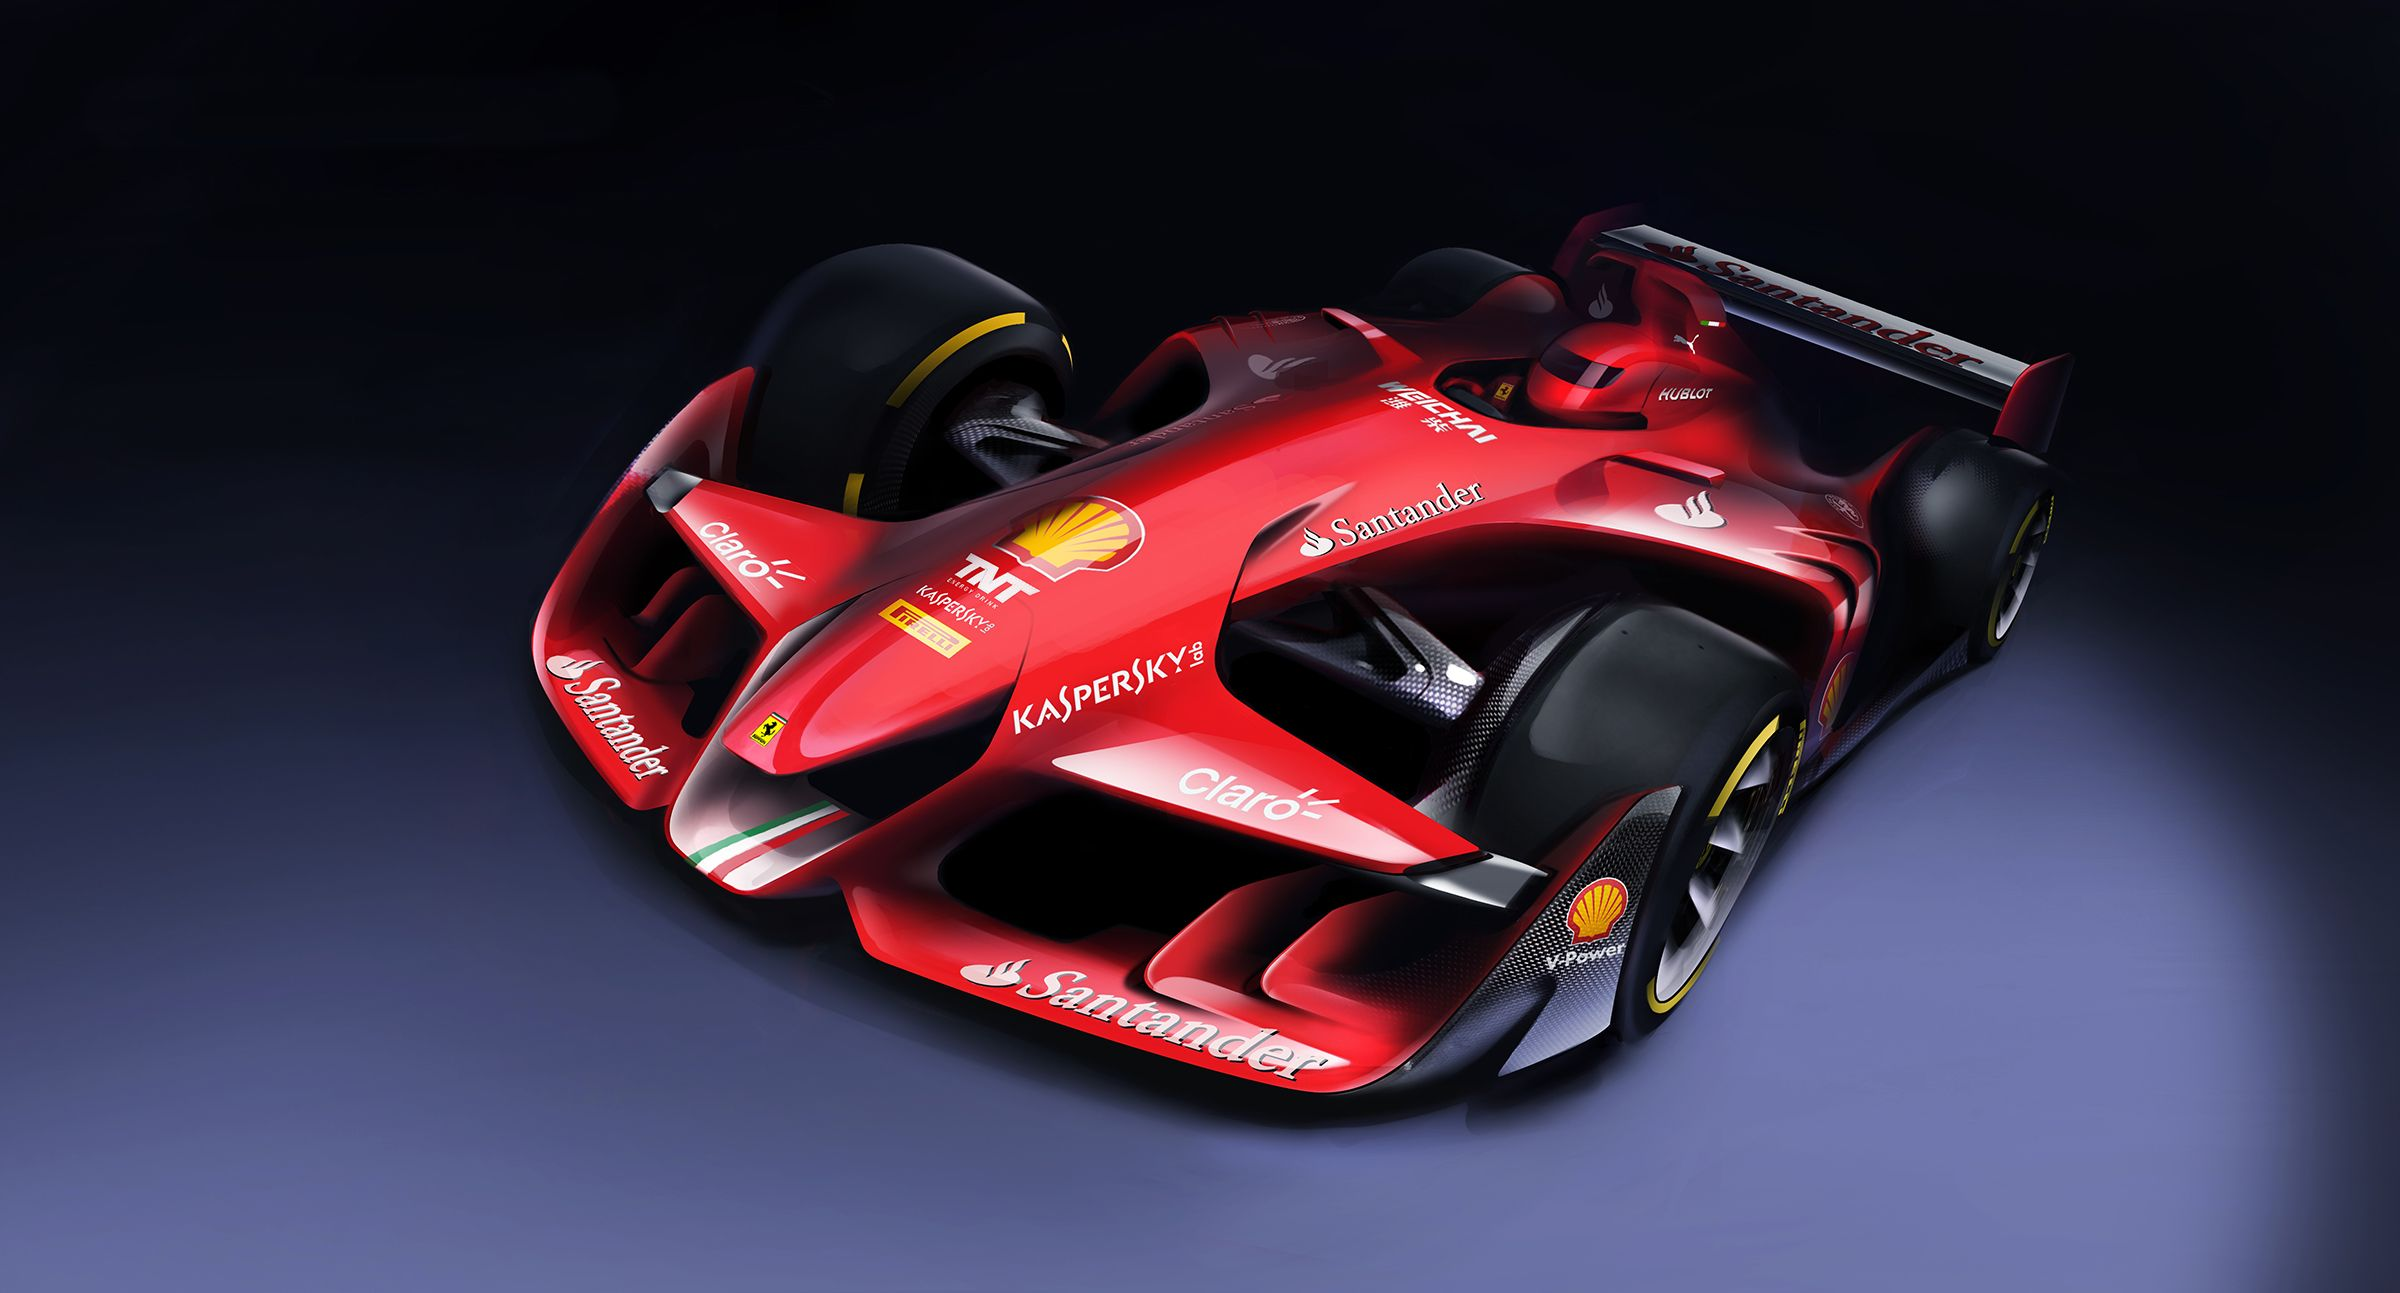 Ferrari S New Concept Is A Political Statement About The Problems With F1 Formula 1 Car Concept Cars Ferrari